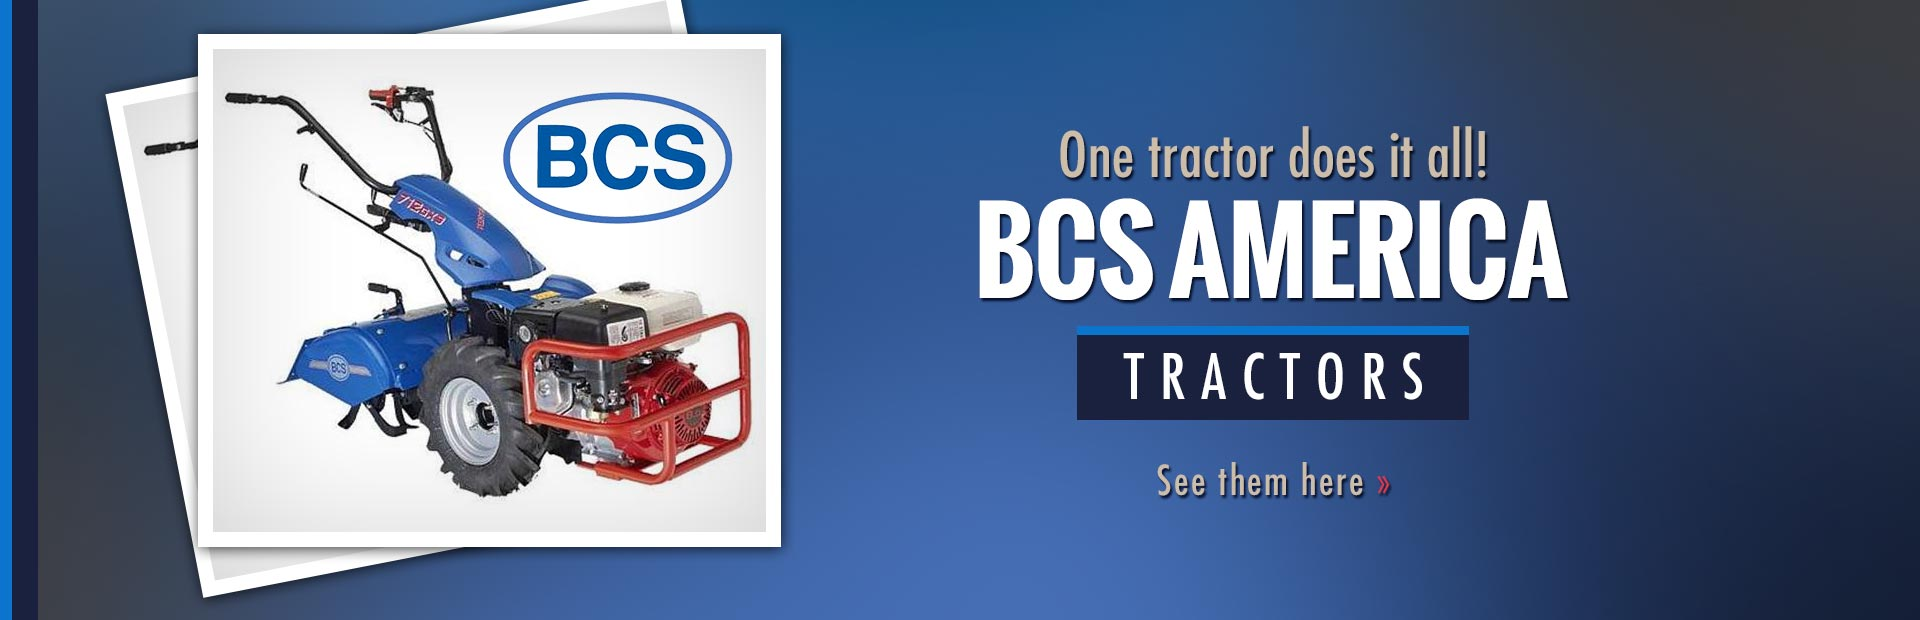 BCS America Tractors: Click here to view the showcase!